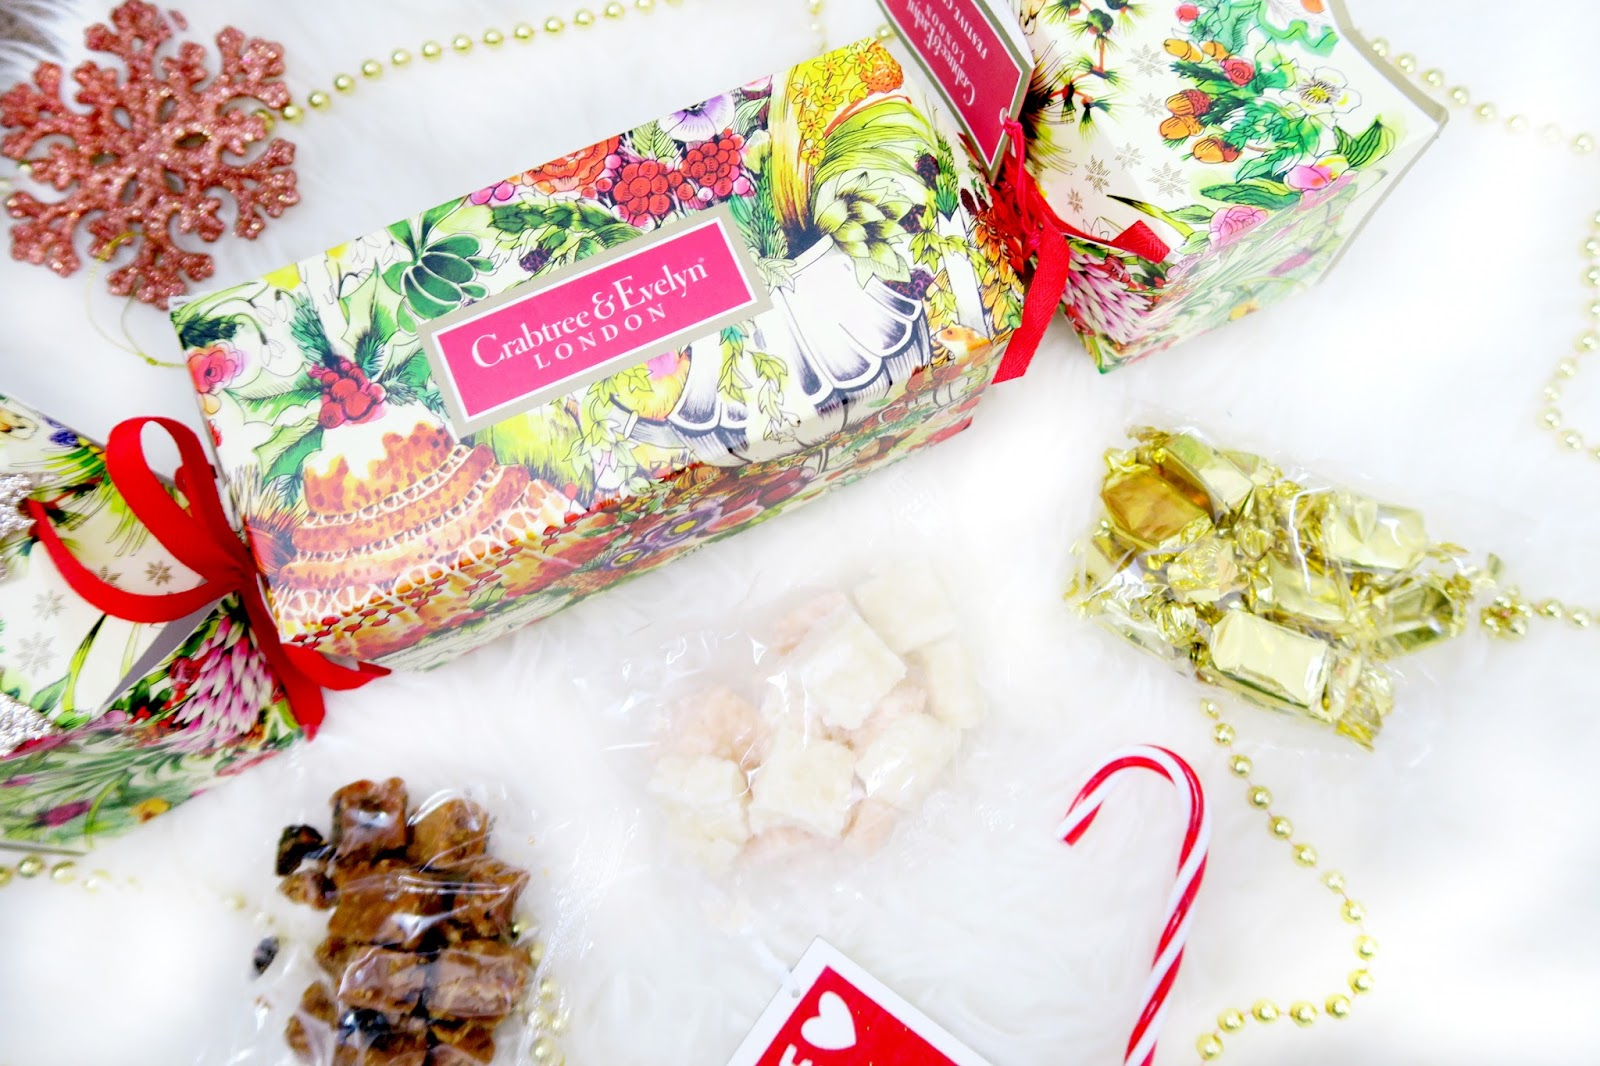 an image of crabtree & evelyn festive food cracker